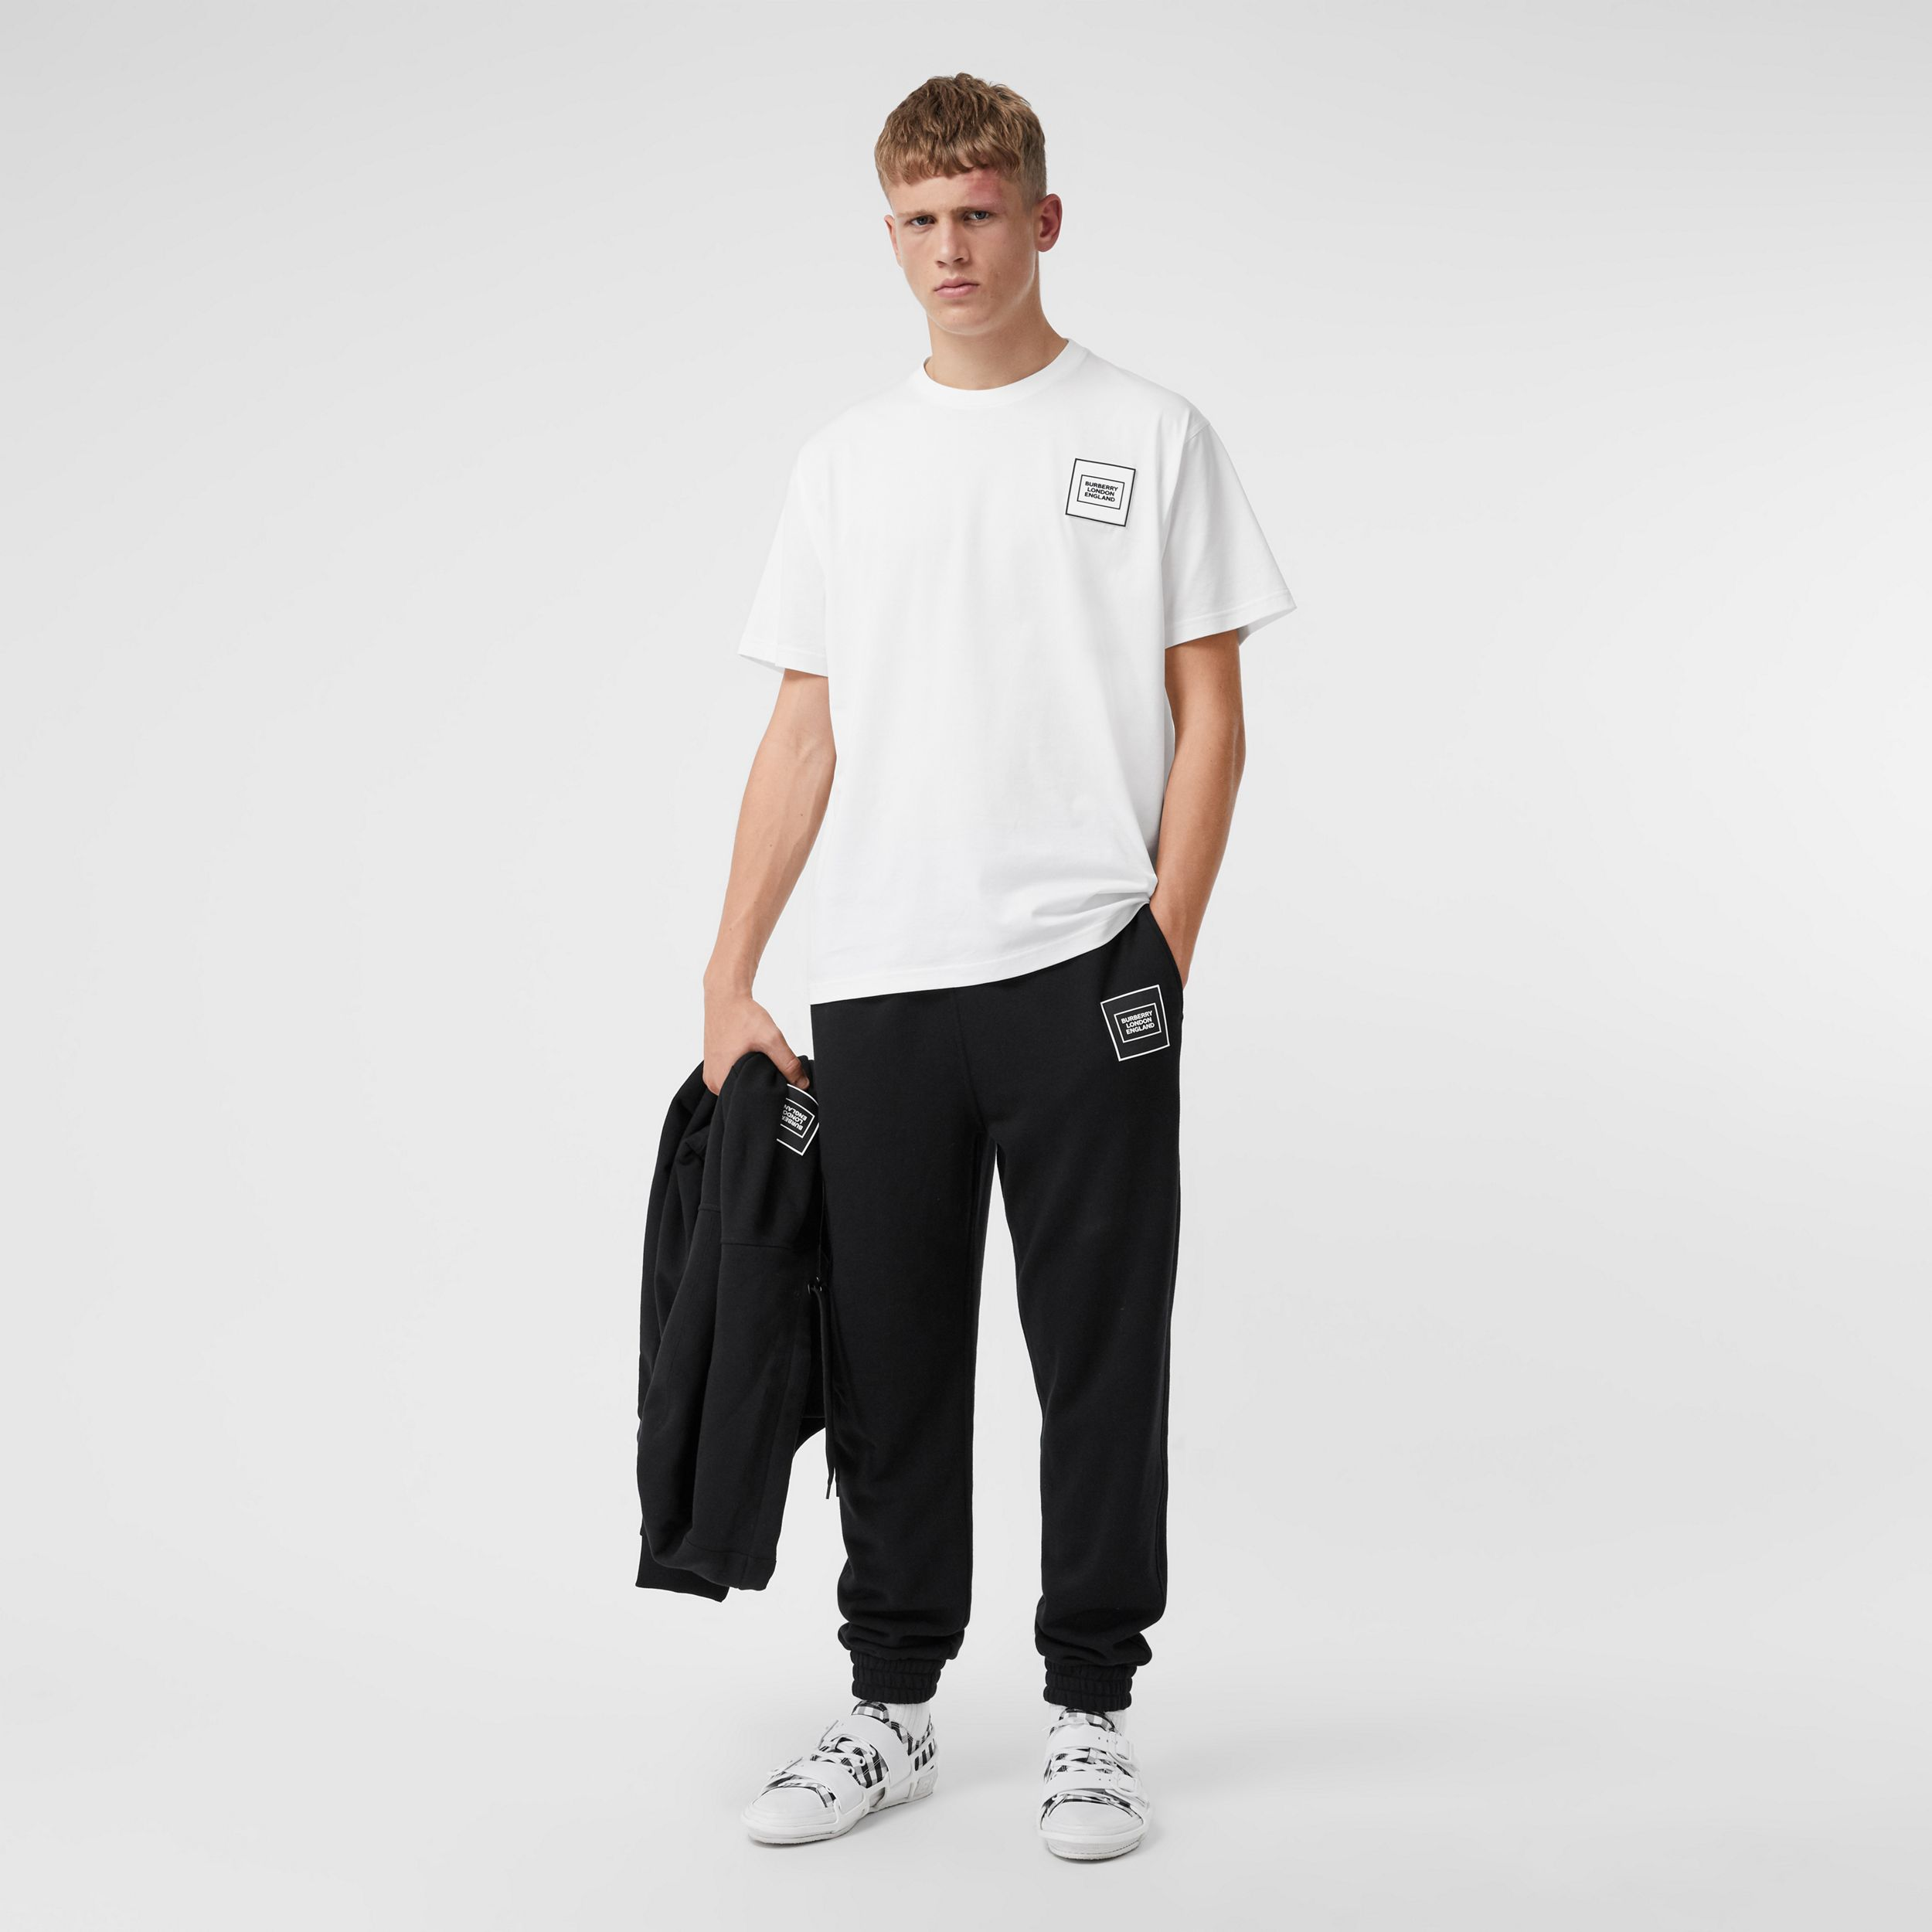 Logo Appliqué Cotton Jogging Pants in Black - Men | Burberry - 1